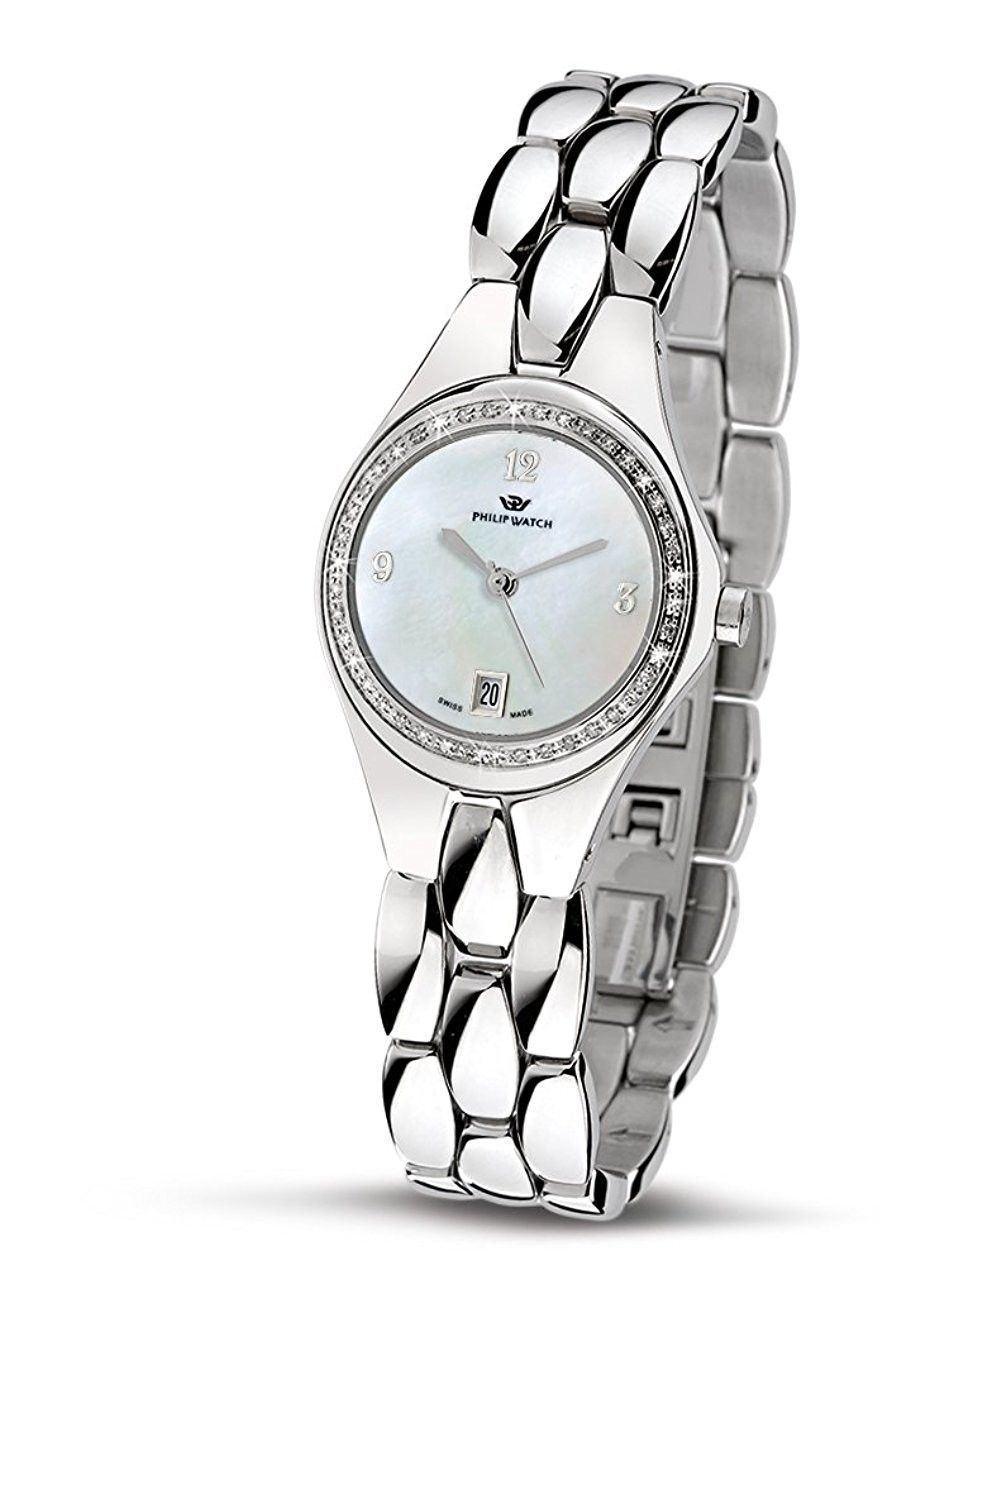 Philip Watch Diamonds ref. R8253500545